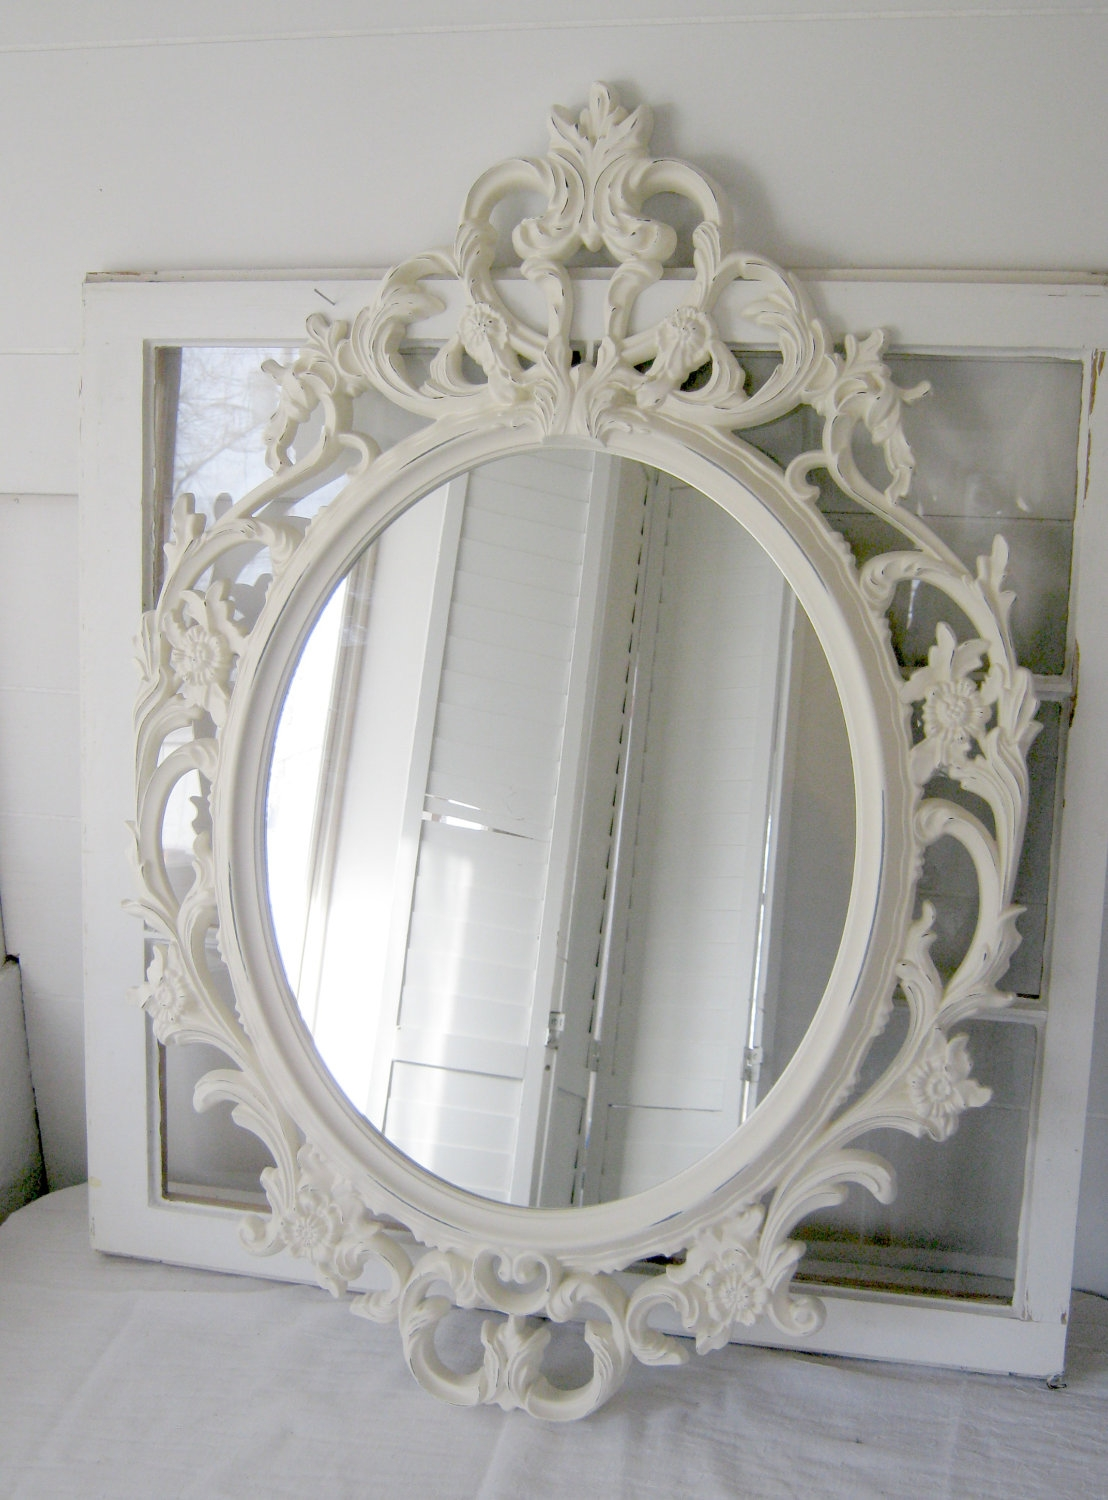 Shab Chic Baroque Oval Mirror Antique White Ornate Mirror For Baroque Mirror White (Image 7 of 15)